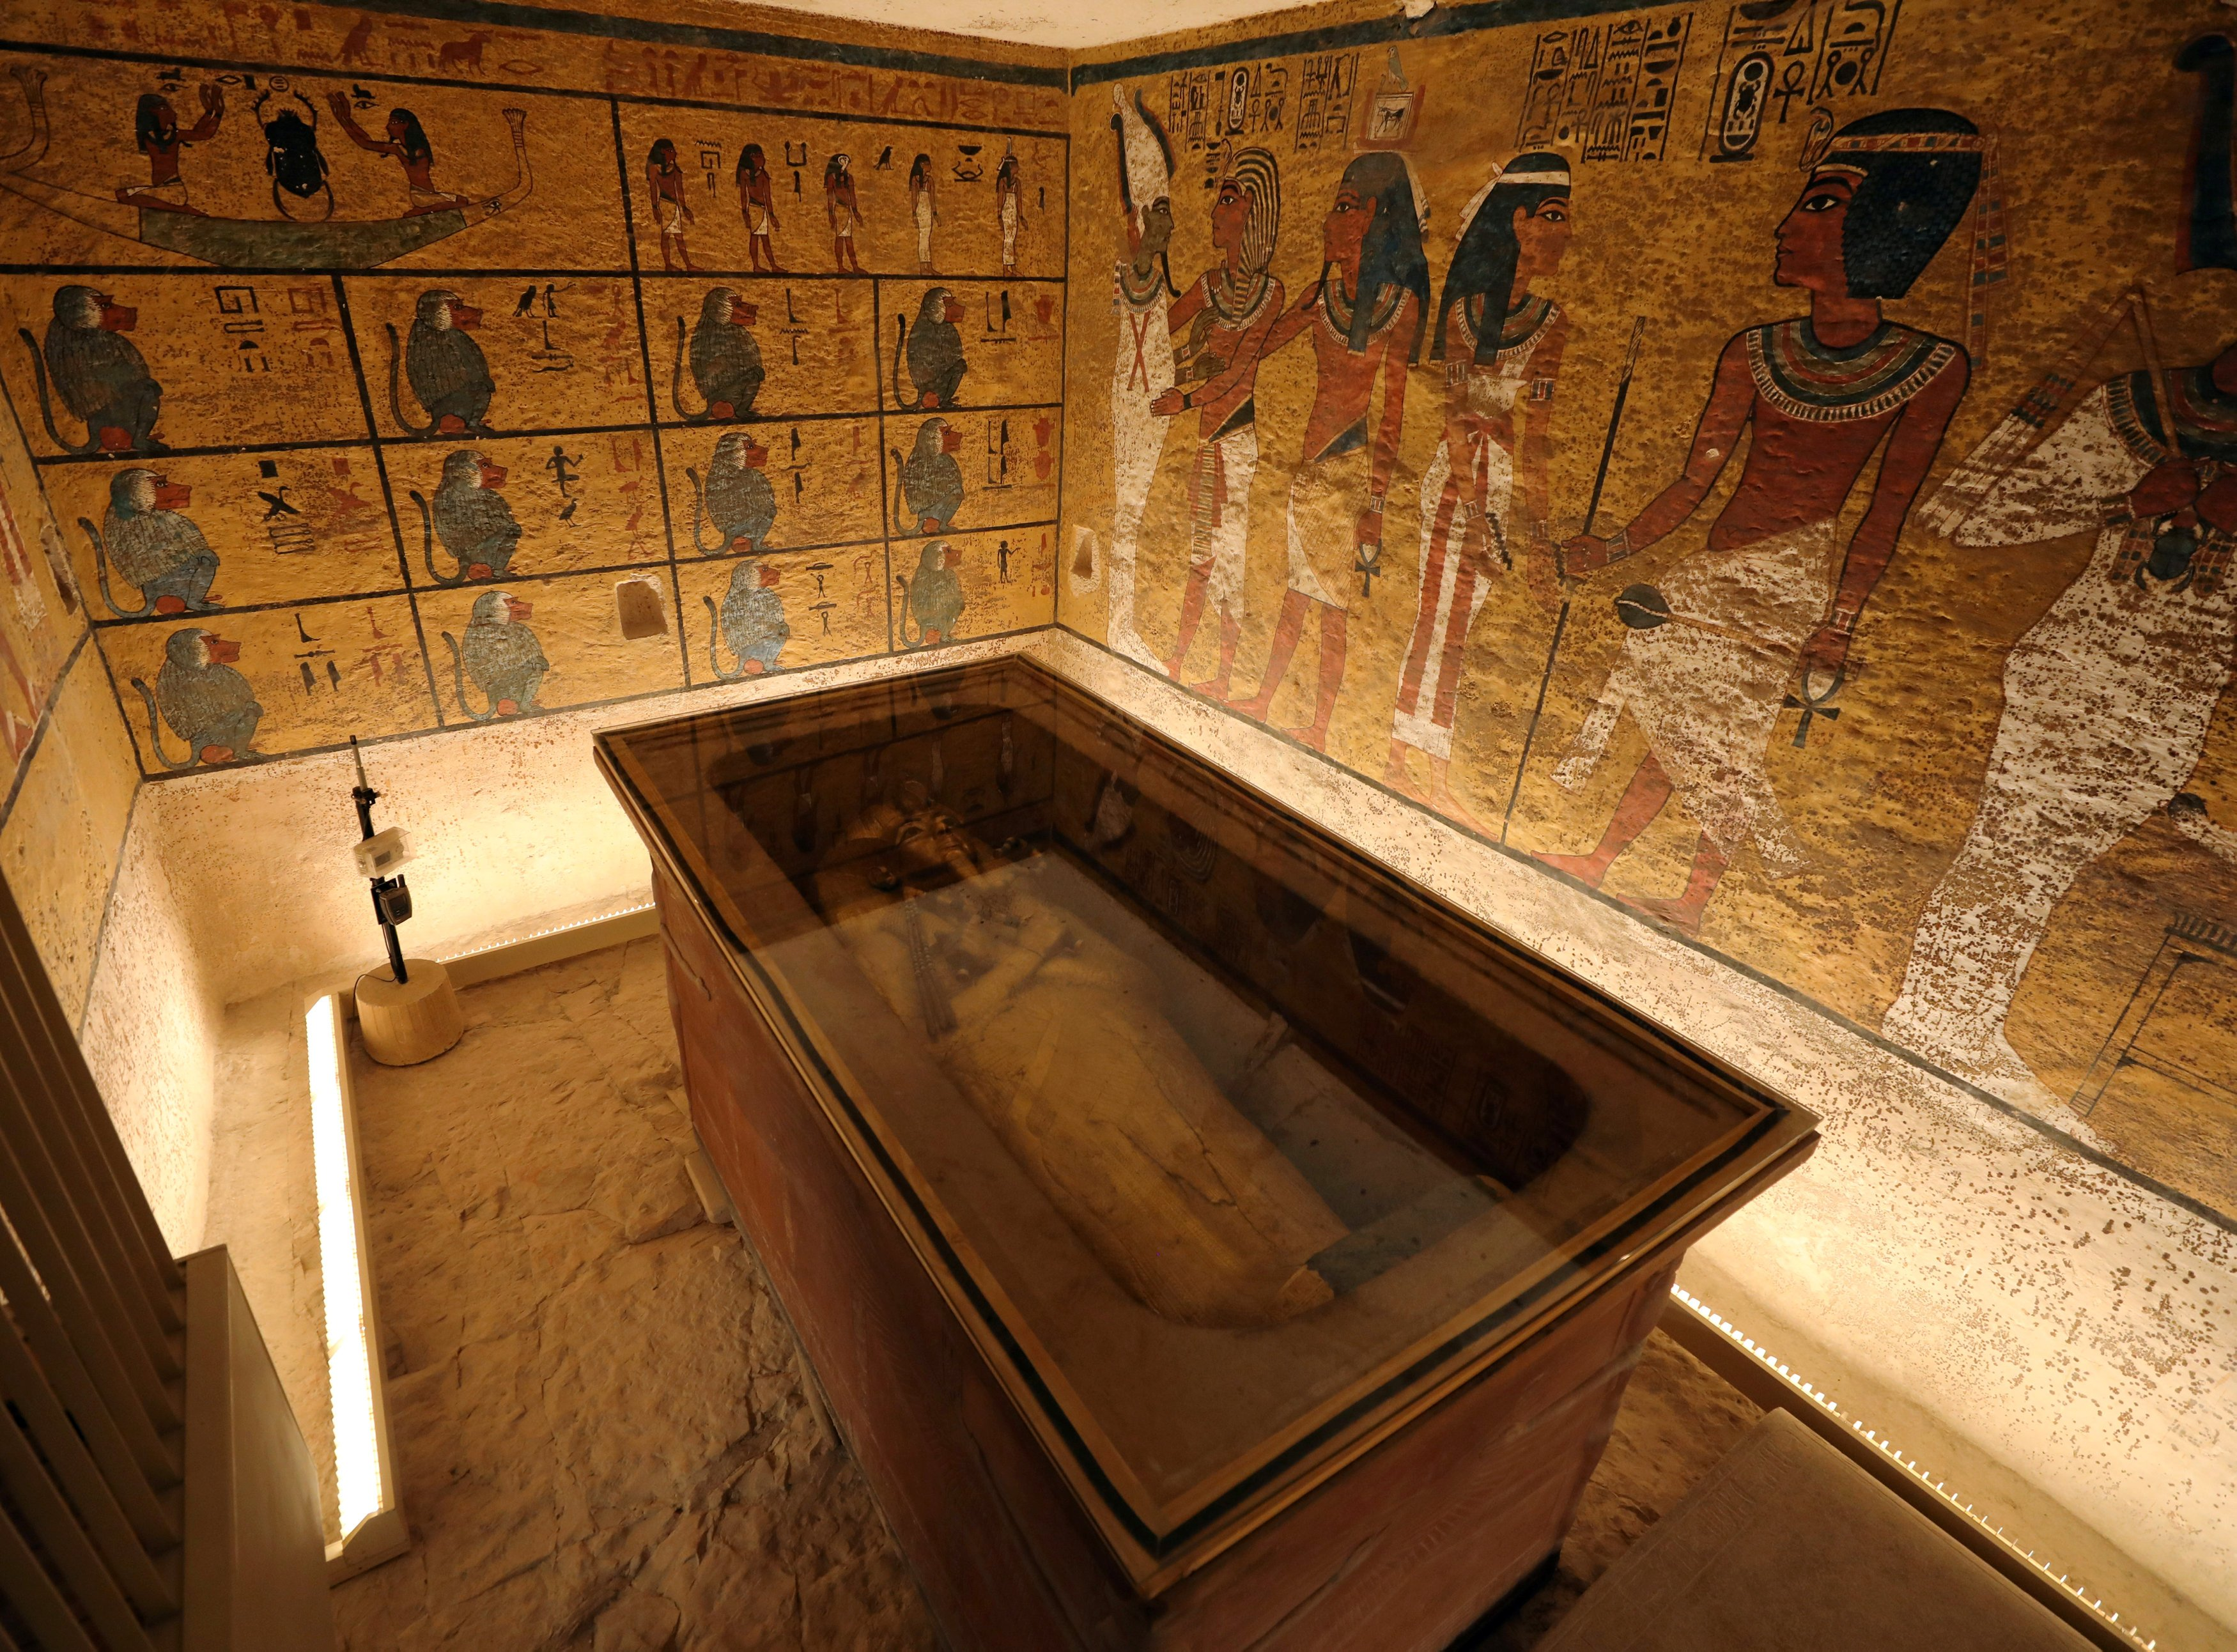 The tomb first became a worldwide sensation when it was discvovered by British archaeologist Howard Carter in 1922, partly because it was so well preserved. But since then dust, damp and visitors have all taken their toll on the site and its treasures (Reuters).